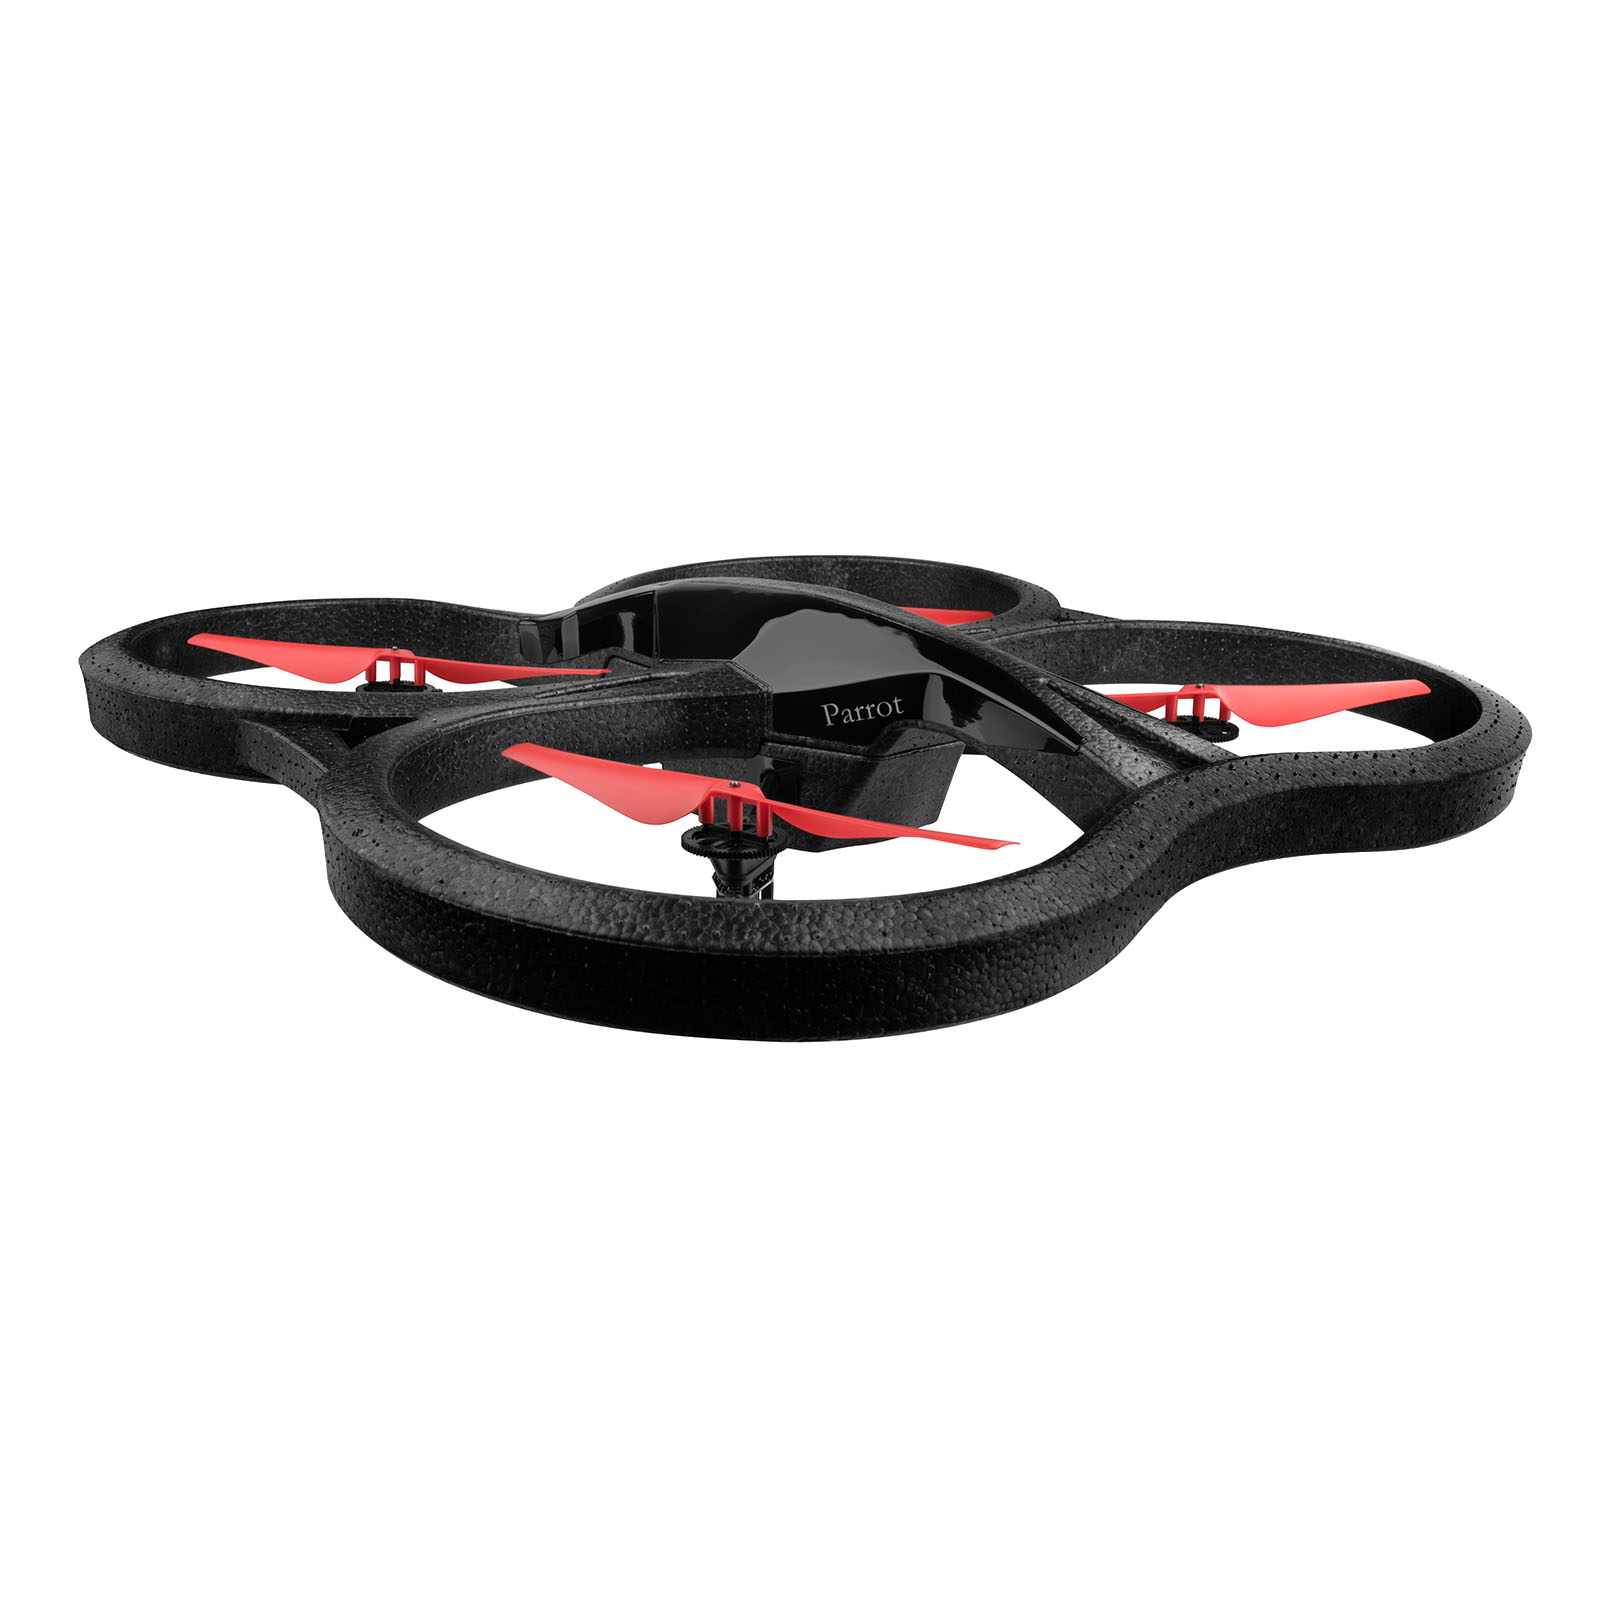 Parrot AR Drone 2.0 Power Edition (Black) (Certified Refurbished)